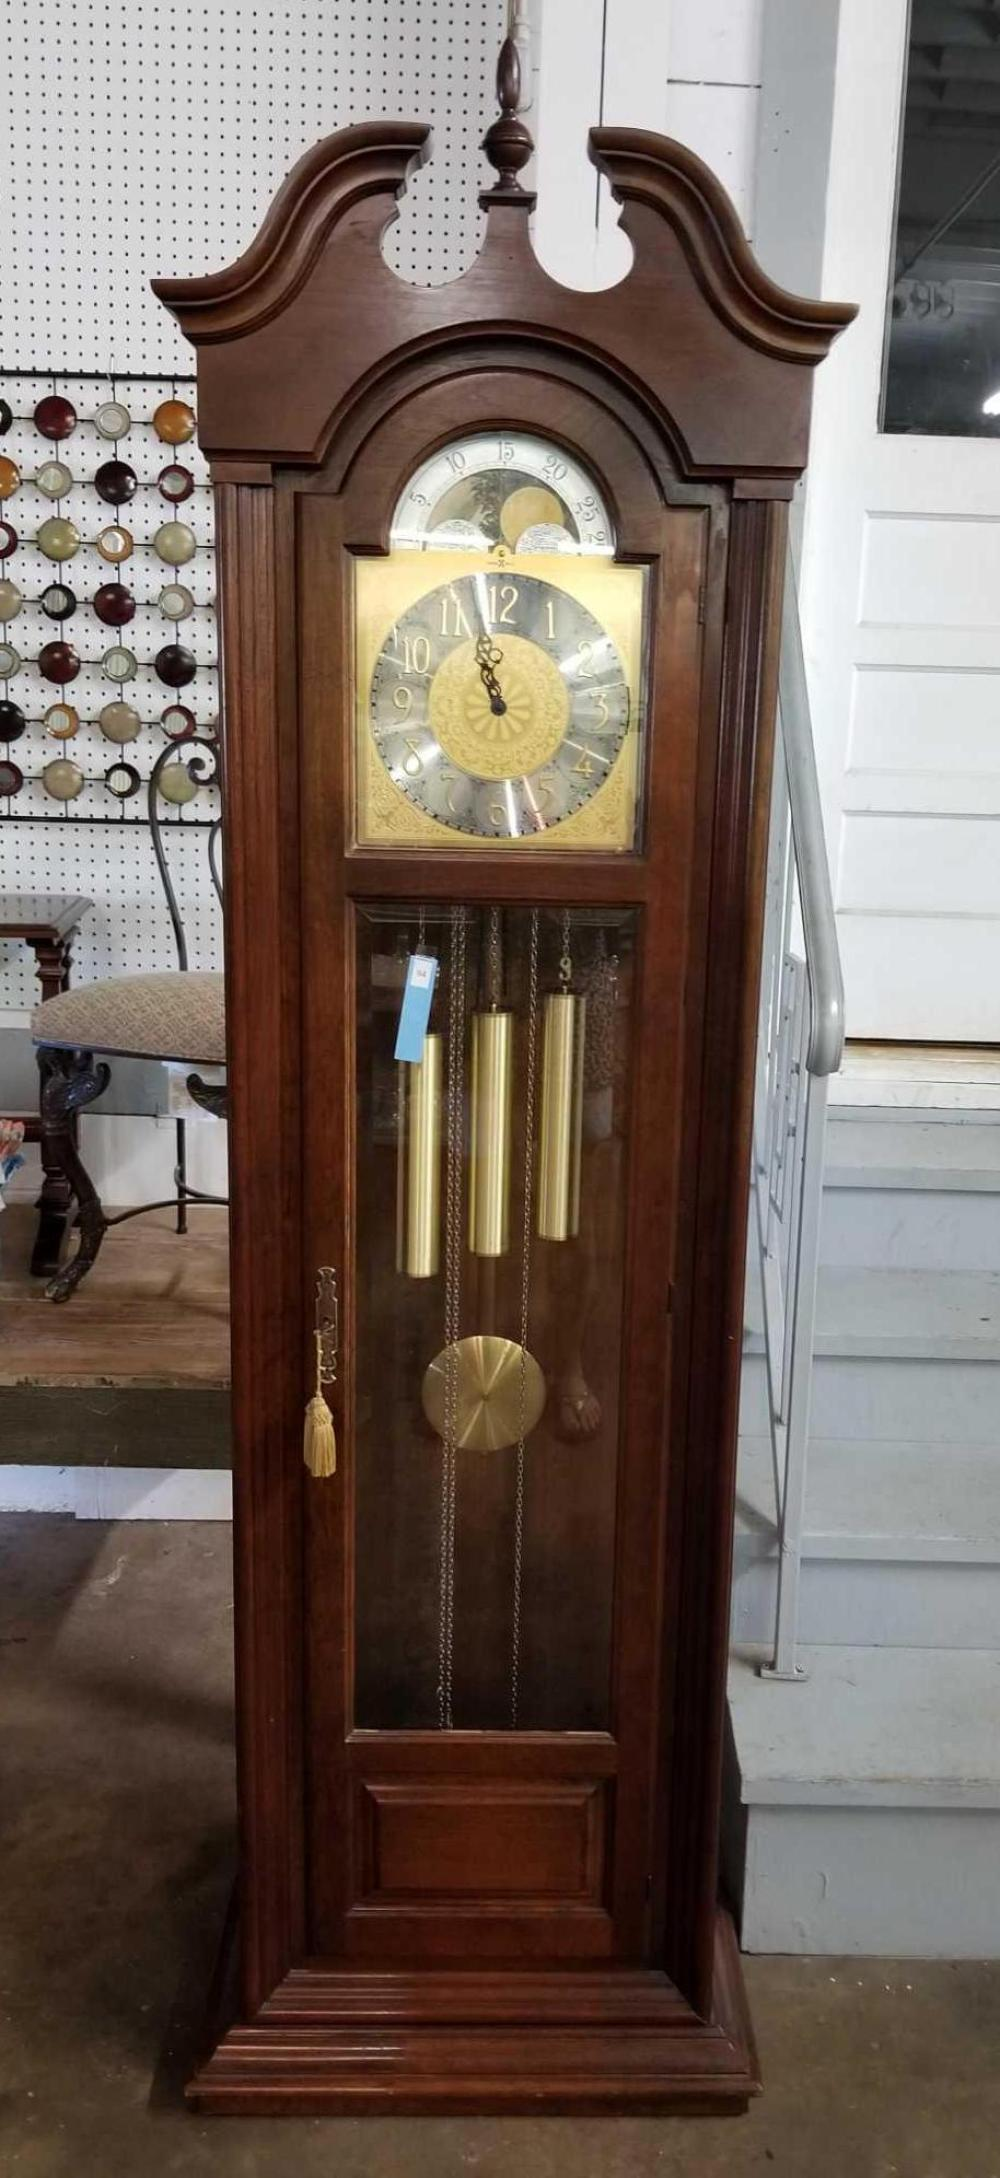 HOWARD MILLER MOON DIAL MODEL 155 TRIPLE CHIME GRANDFATHER CLOCK